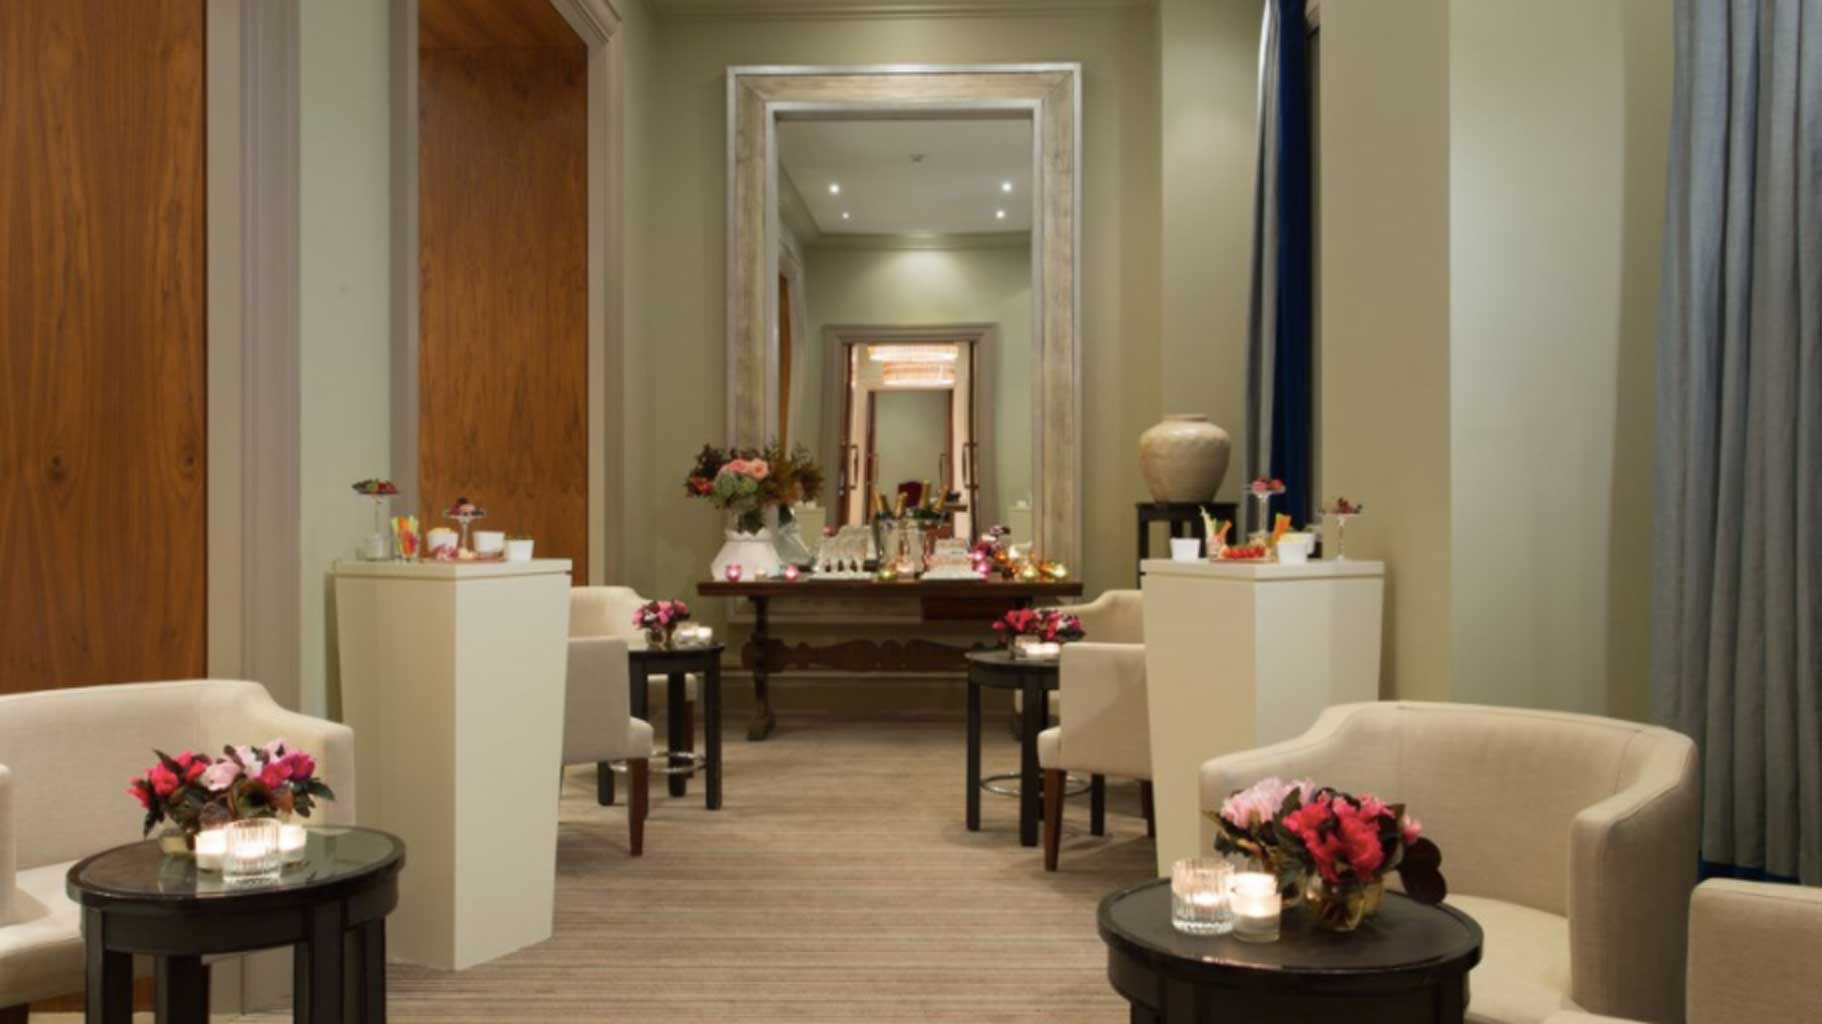 hotels in brussels Rocco Forte Hotel Amigo in Brussels